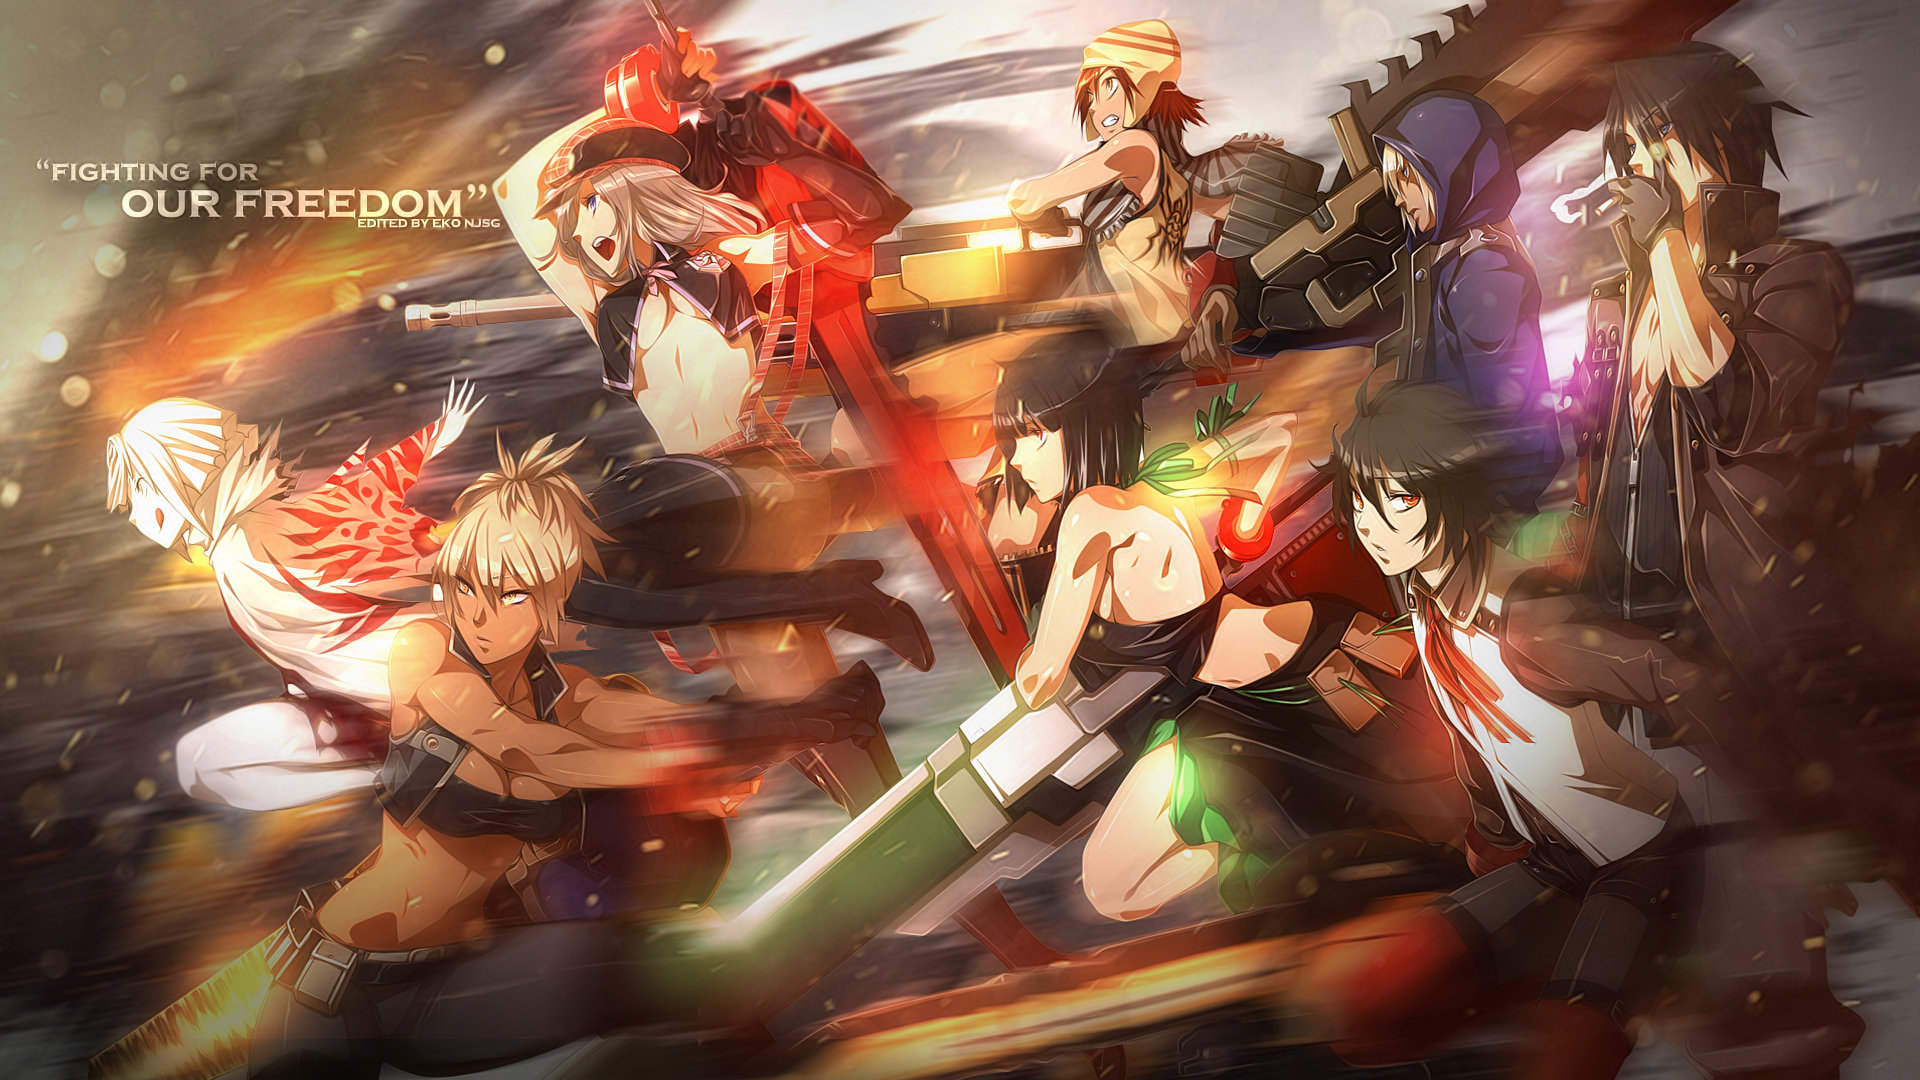 Download full hd 1920x1080 God Eater desktop background ID:409562 for free